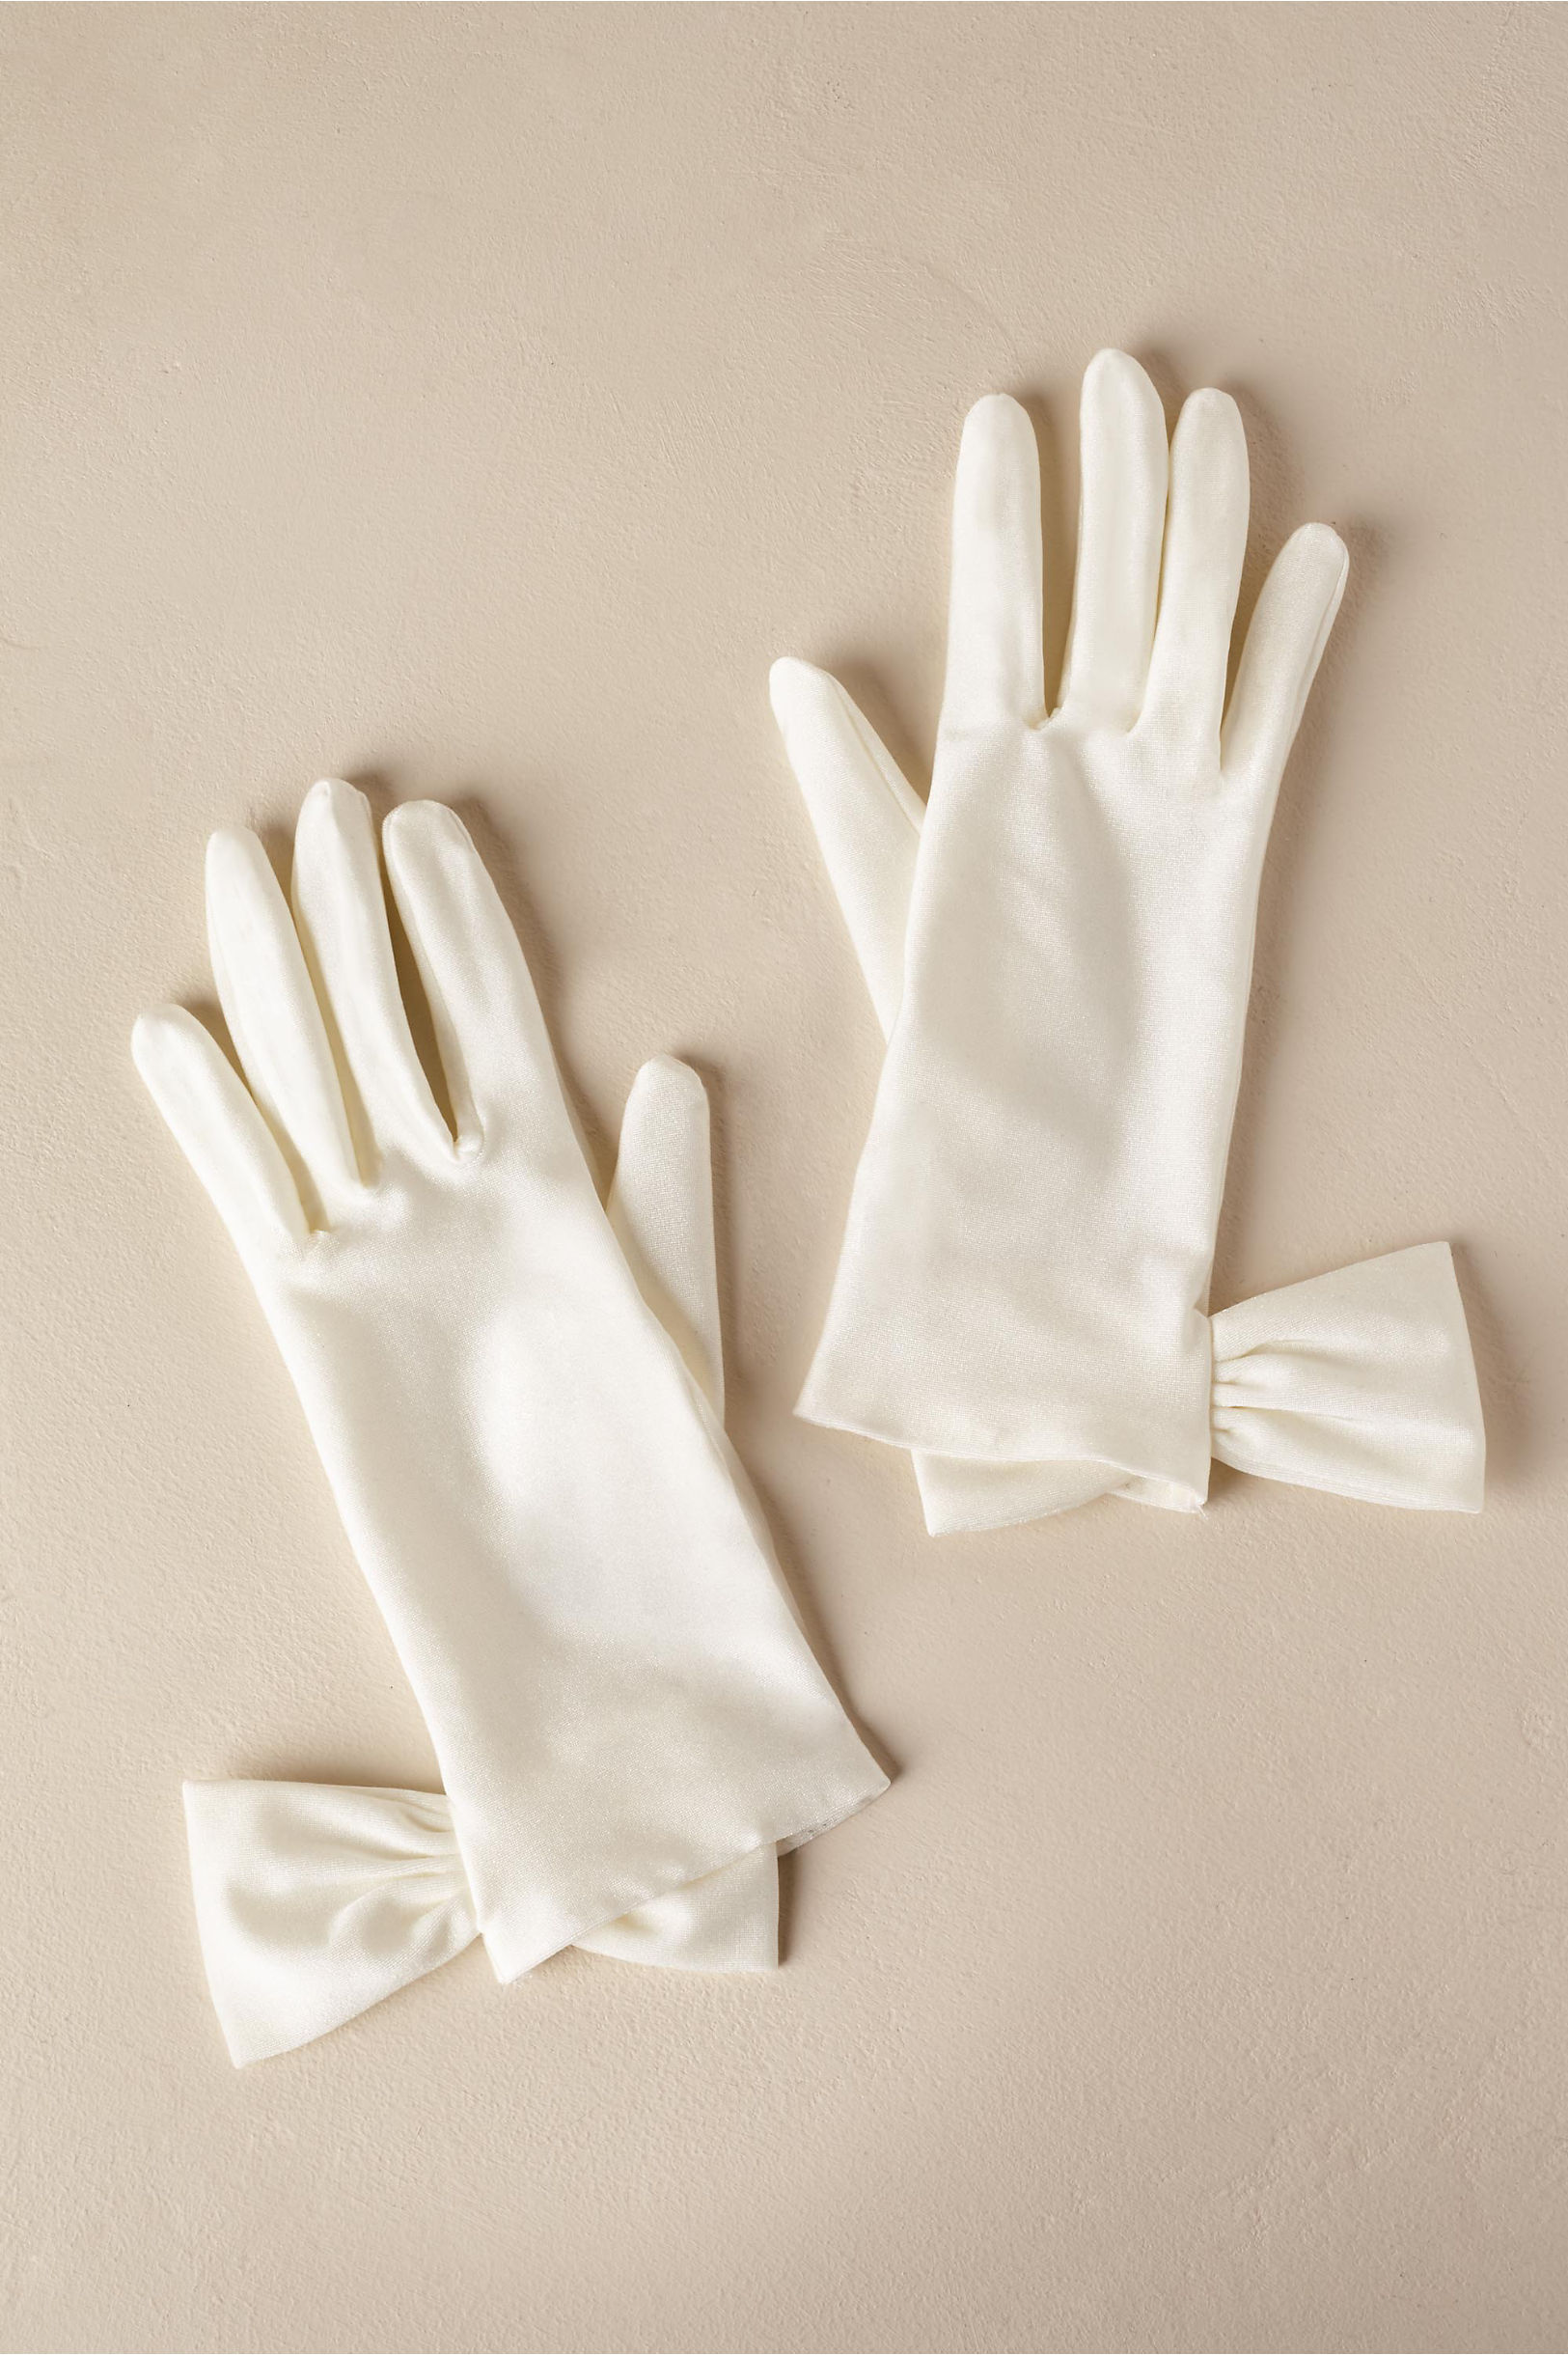 Vintage Style Gloves- Long, Wrist, Evening, Day, Leather, Lace Penny Gloves $98.00 AT vintagedancer.com